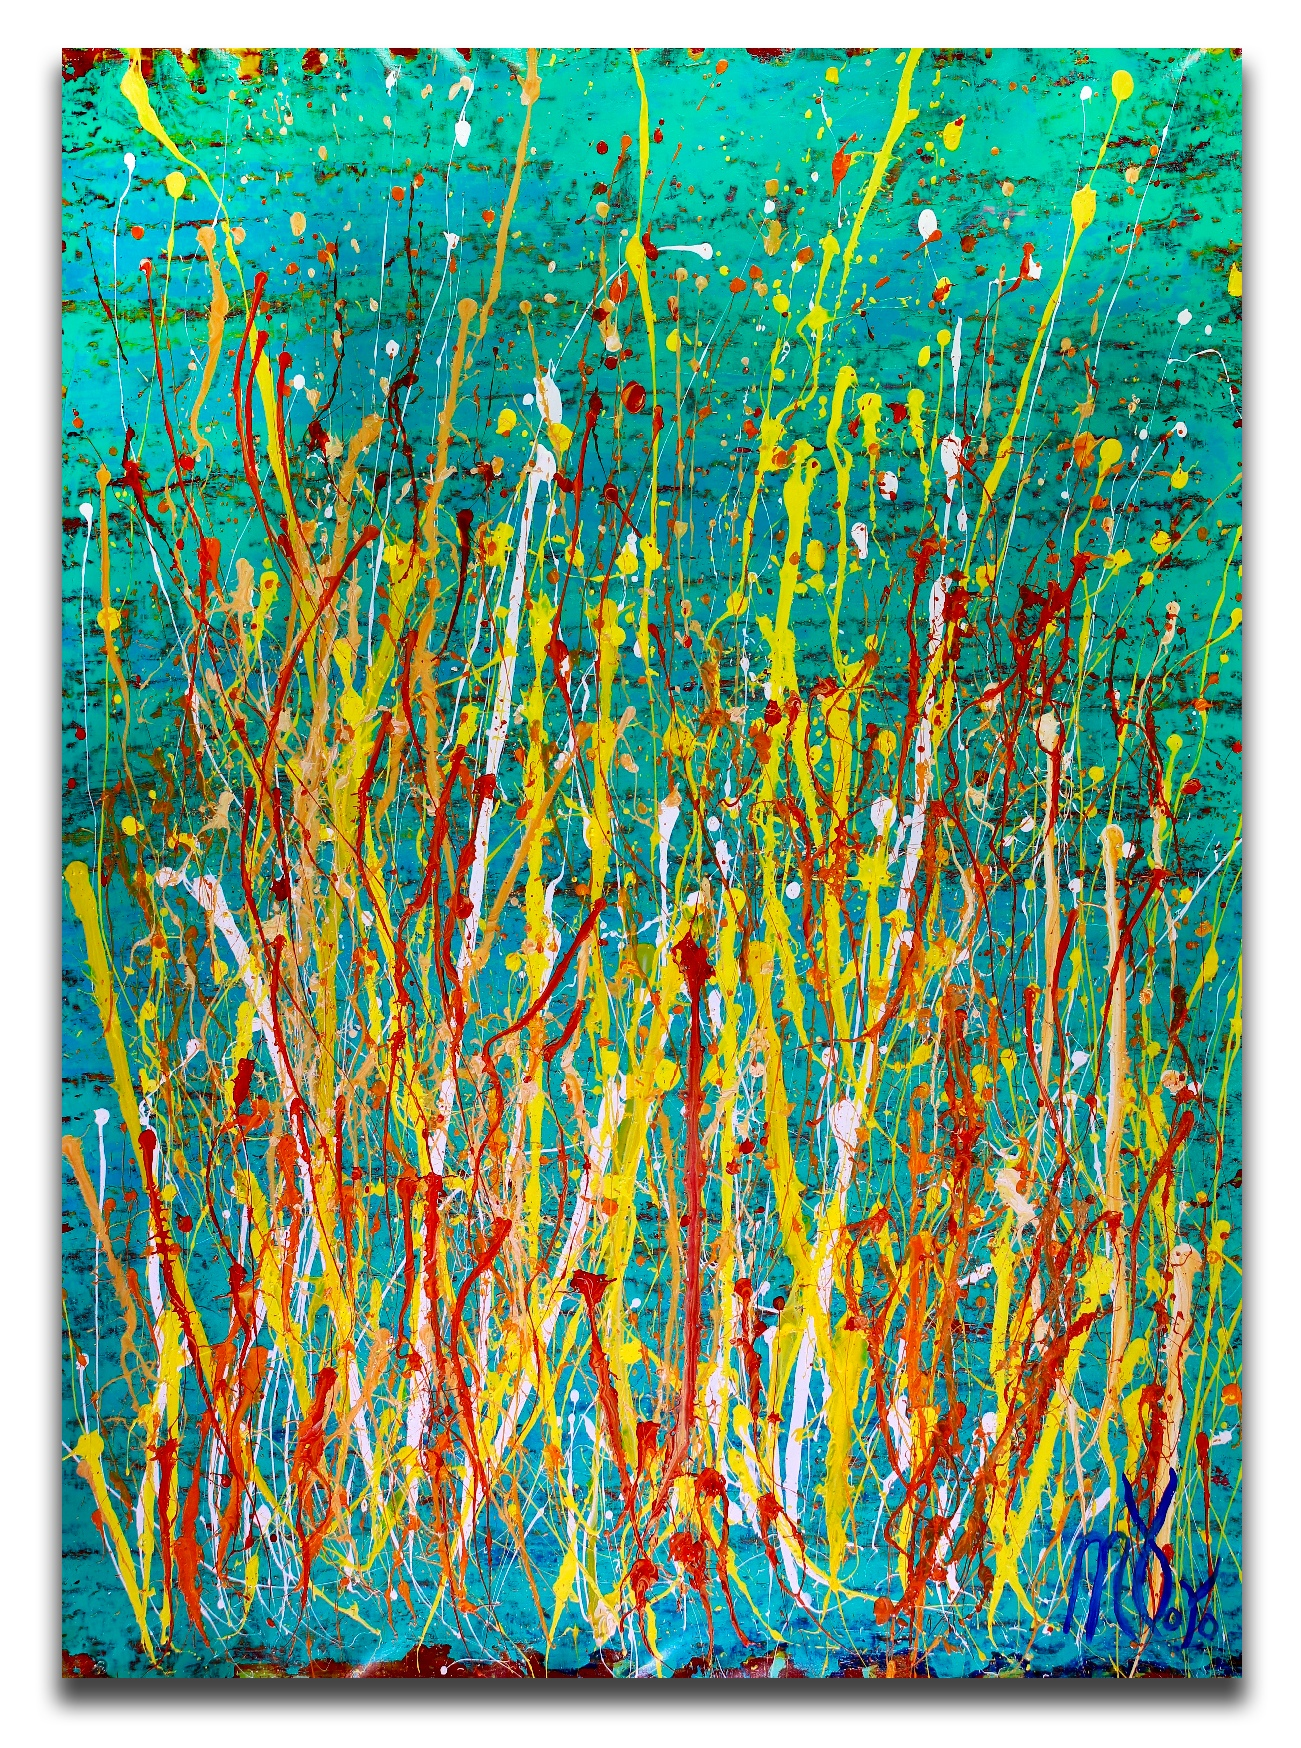 Drizzles frenzy over aqua green (2018) Abstract Acrylic painting by Nestor Toro